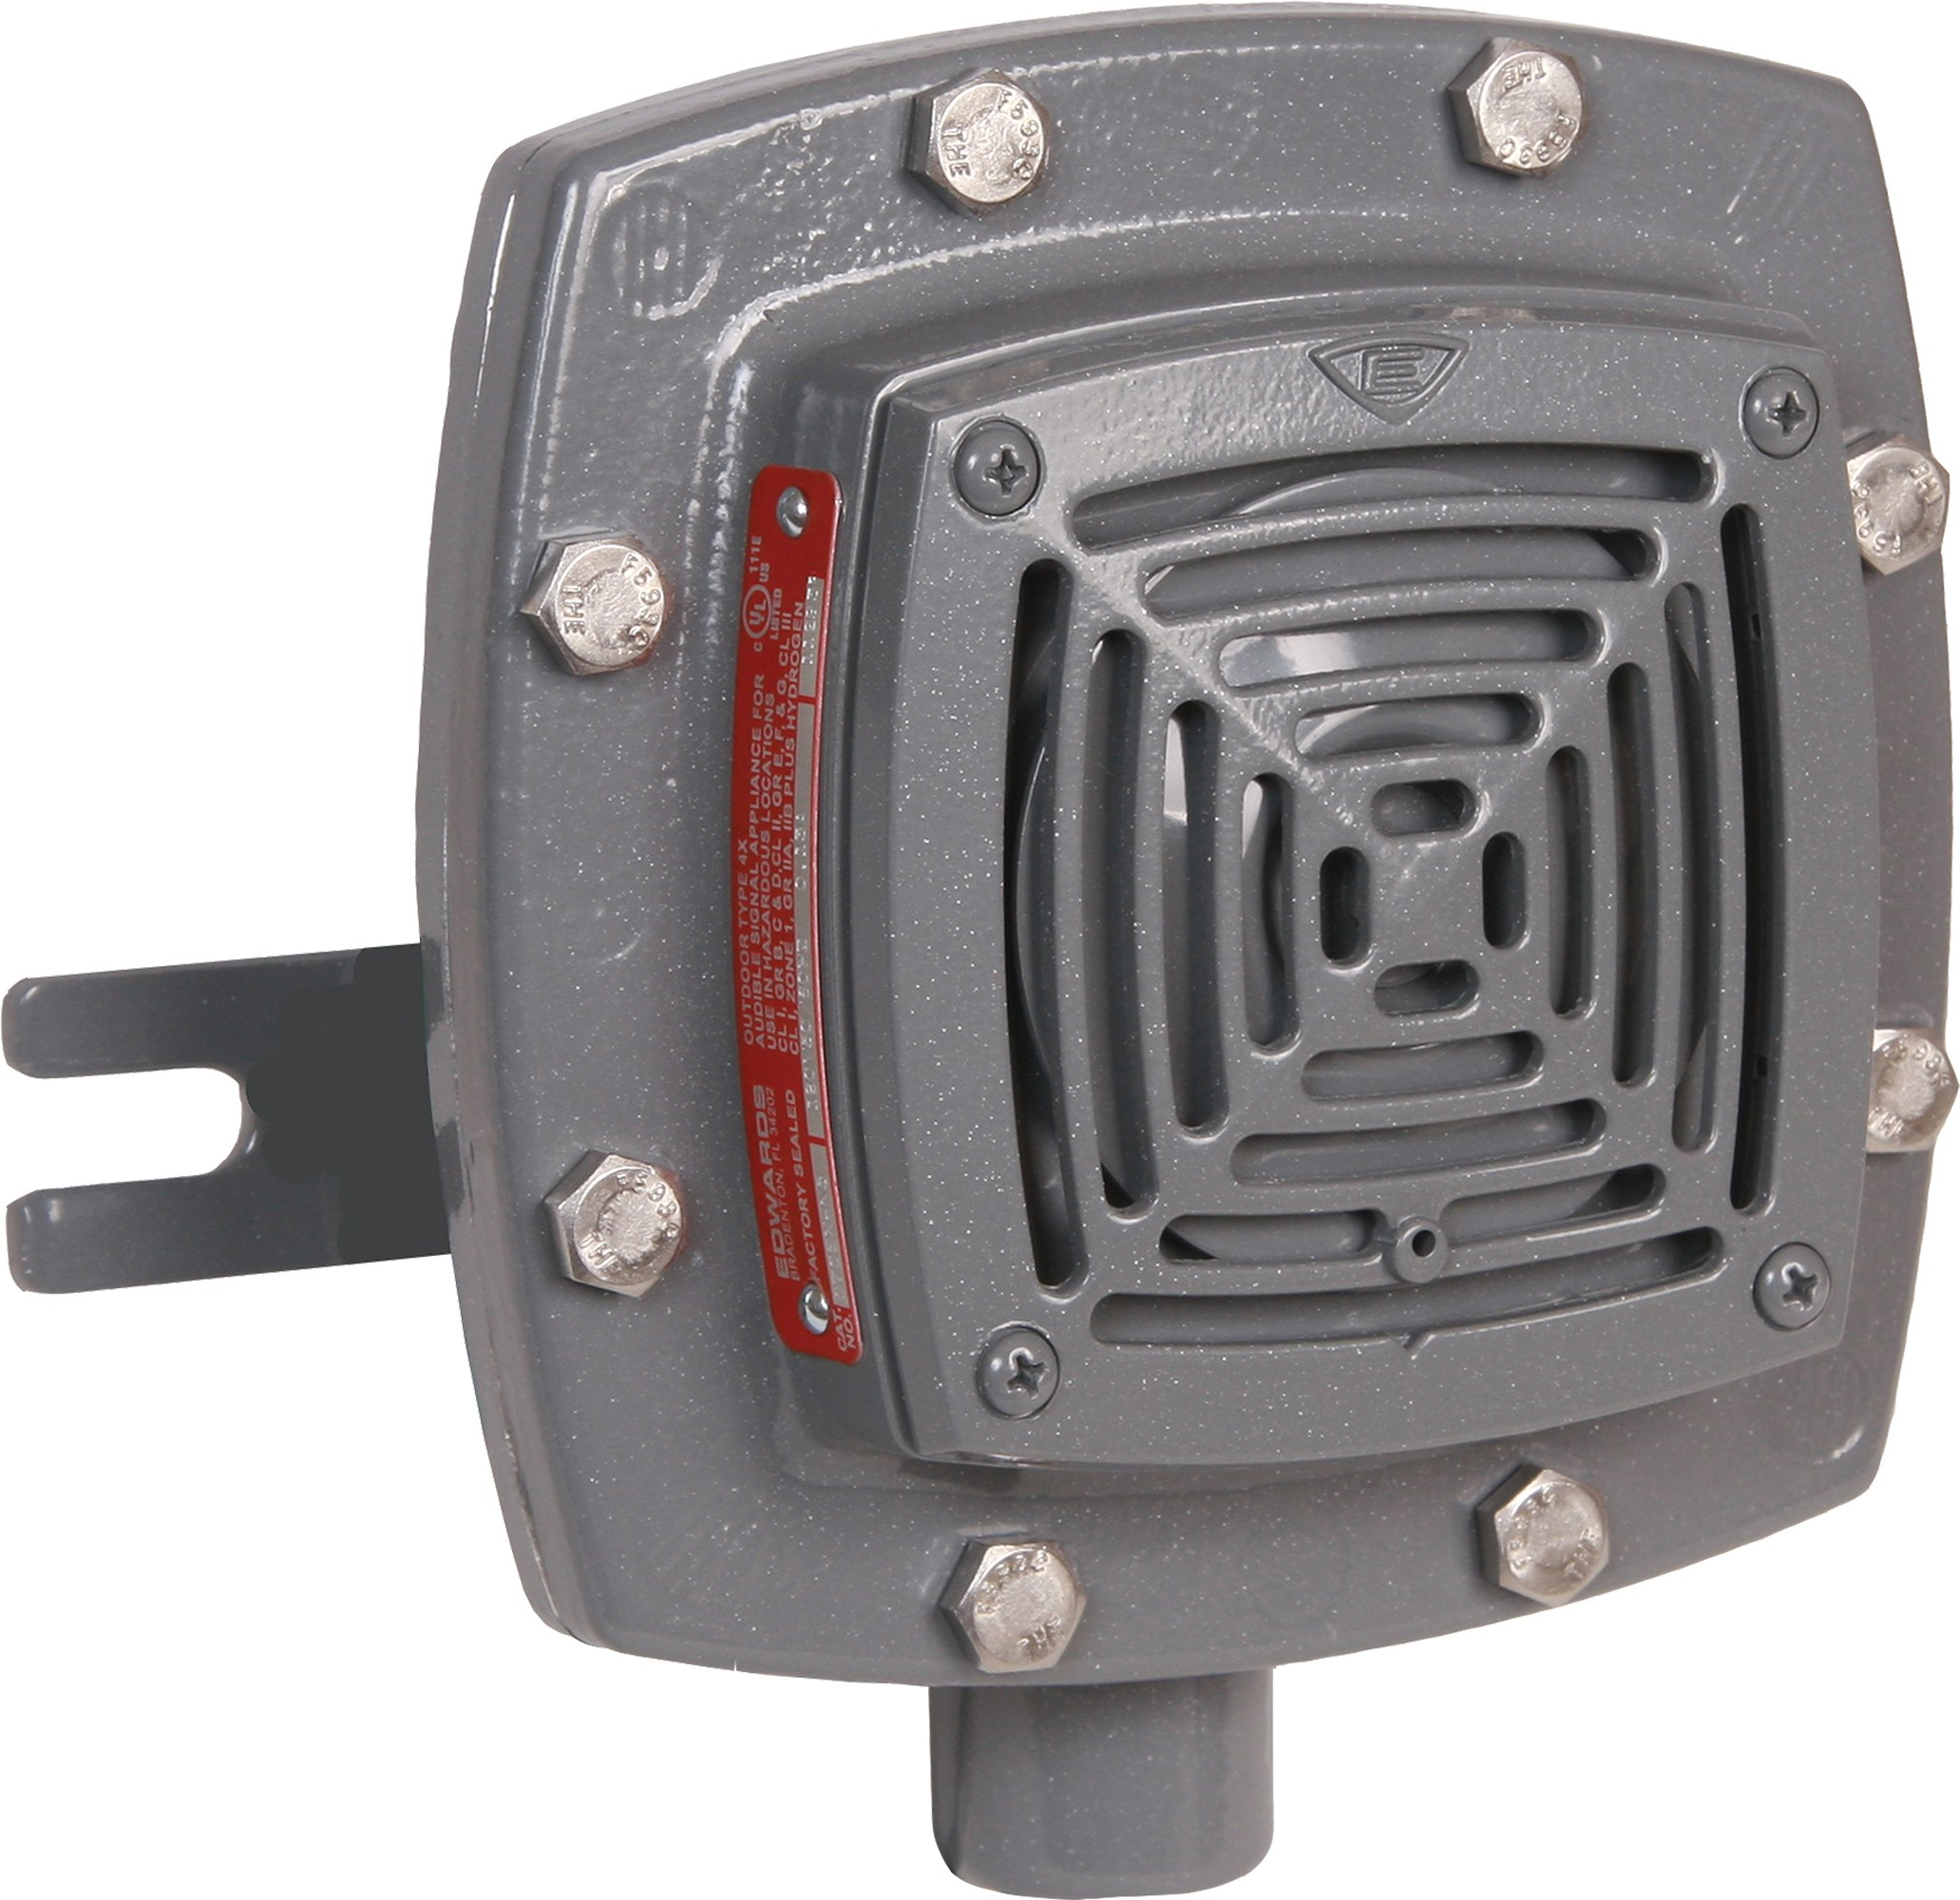 Edwards Signaling 879EX-G1 Vibrating Horn, 107/97 db, Heavy Duty Explosion Proof, 24V DC, Gray